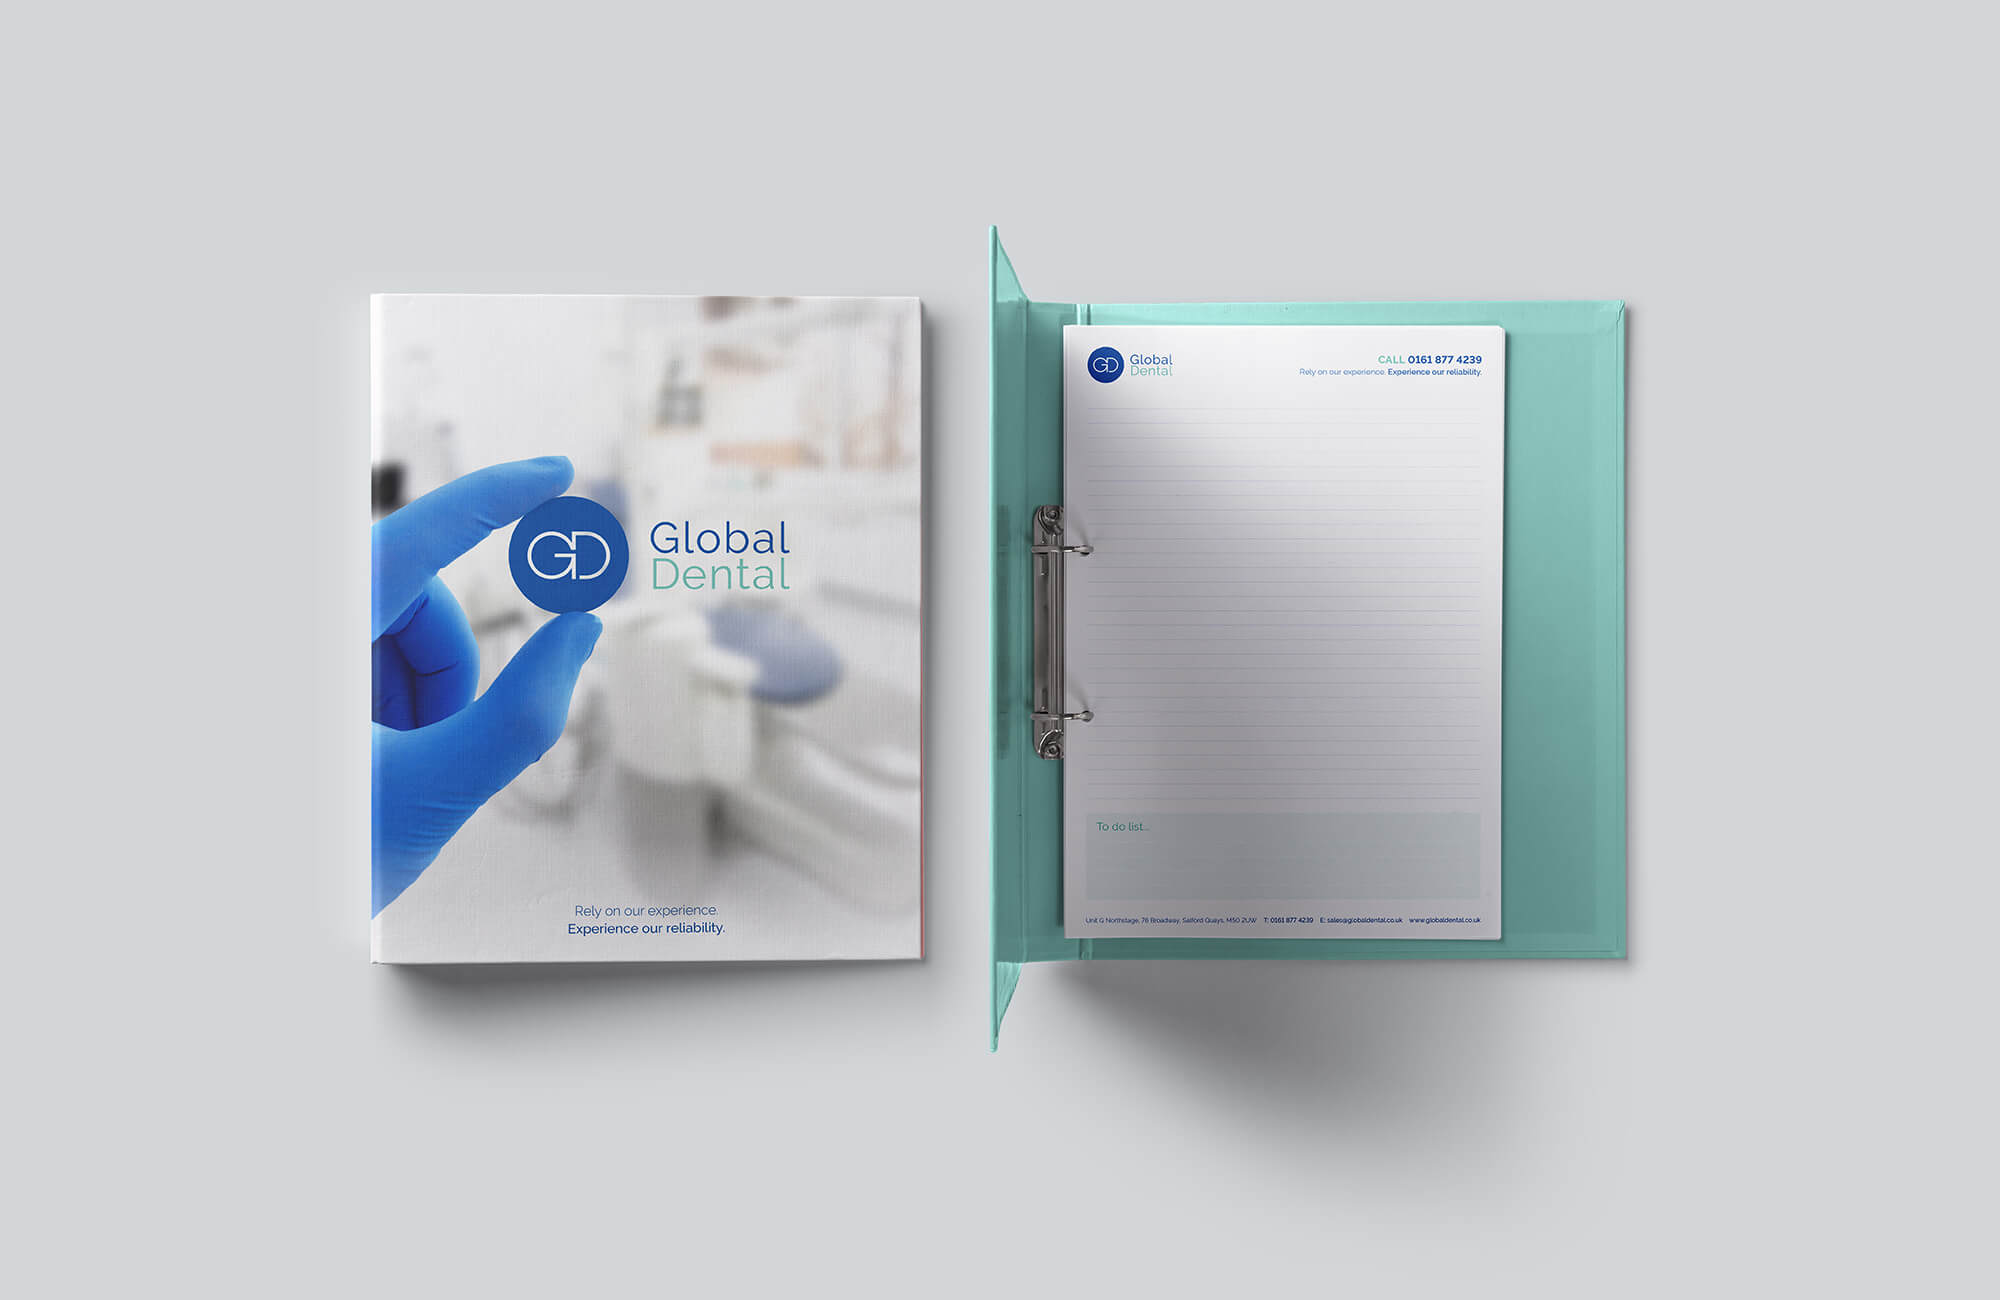 Global Dental Bespoke Ring Binder